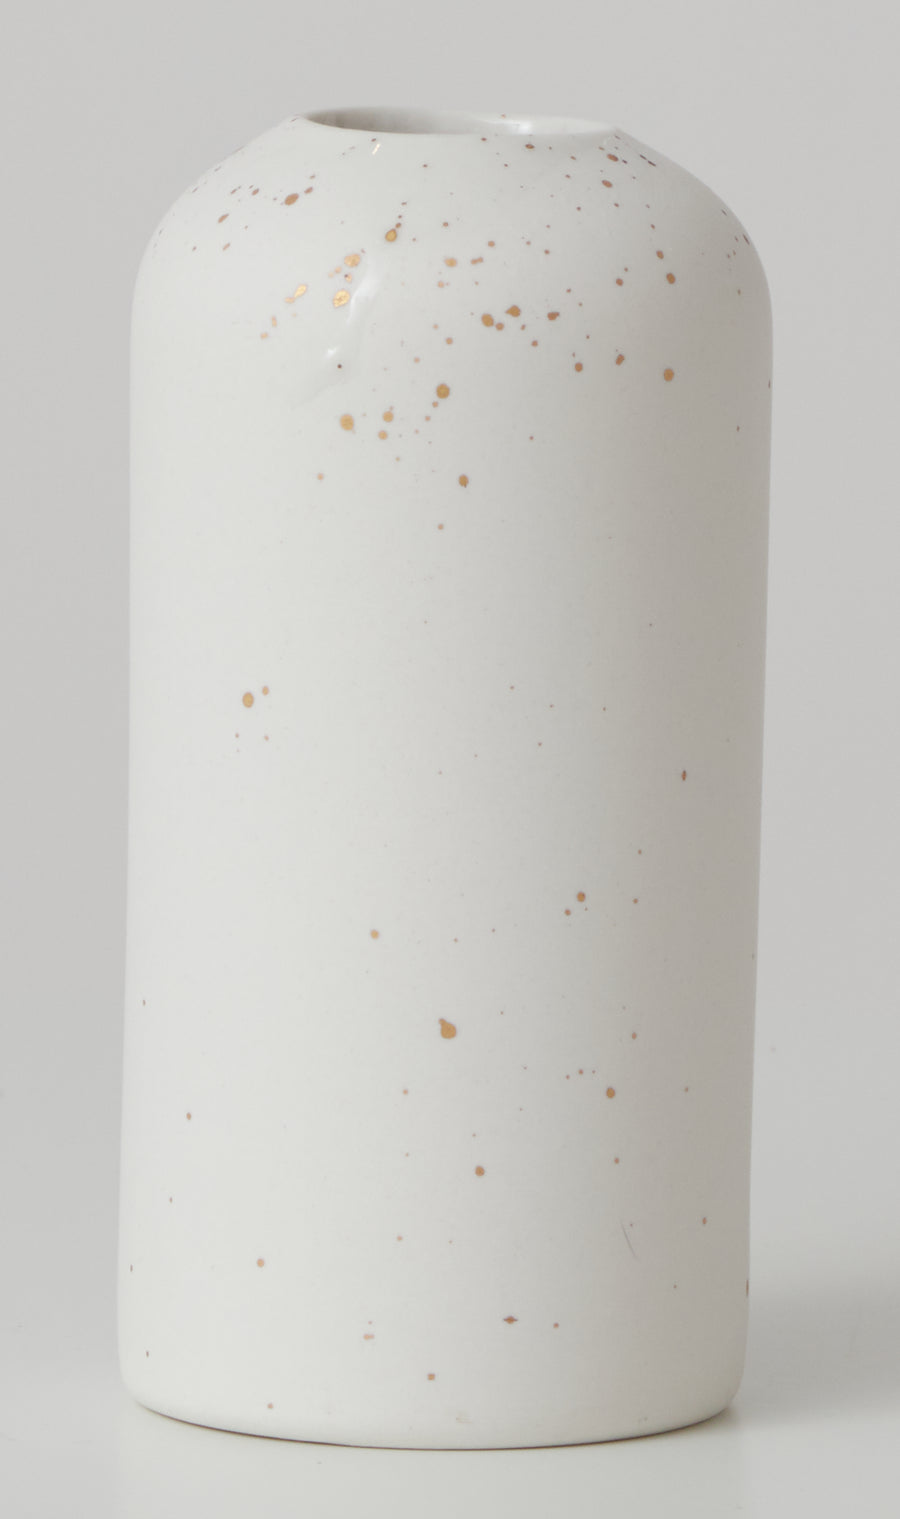 Medium Porcelain Vase with Gold Splatter